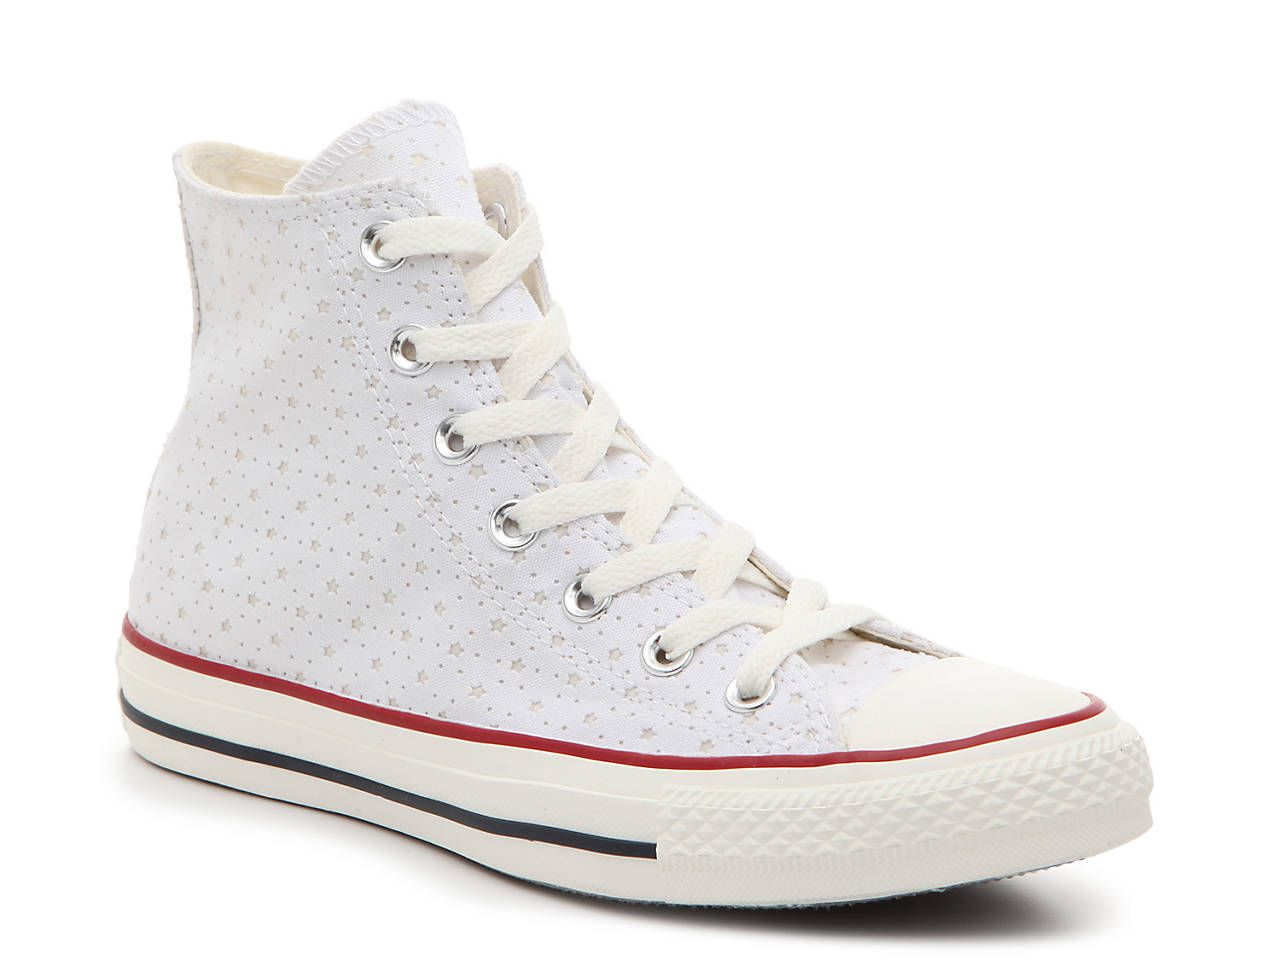 bbc9284798b7 Converse Chuck Taylor All Star Perforated High-Top Sneaker - Women s ...